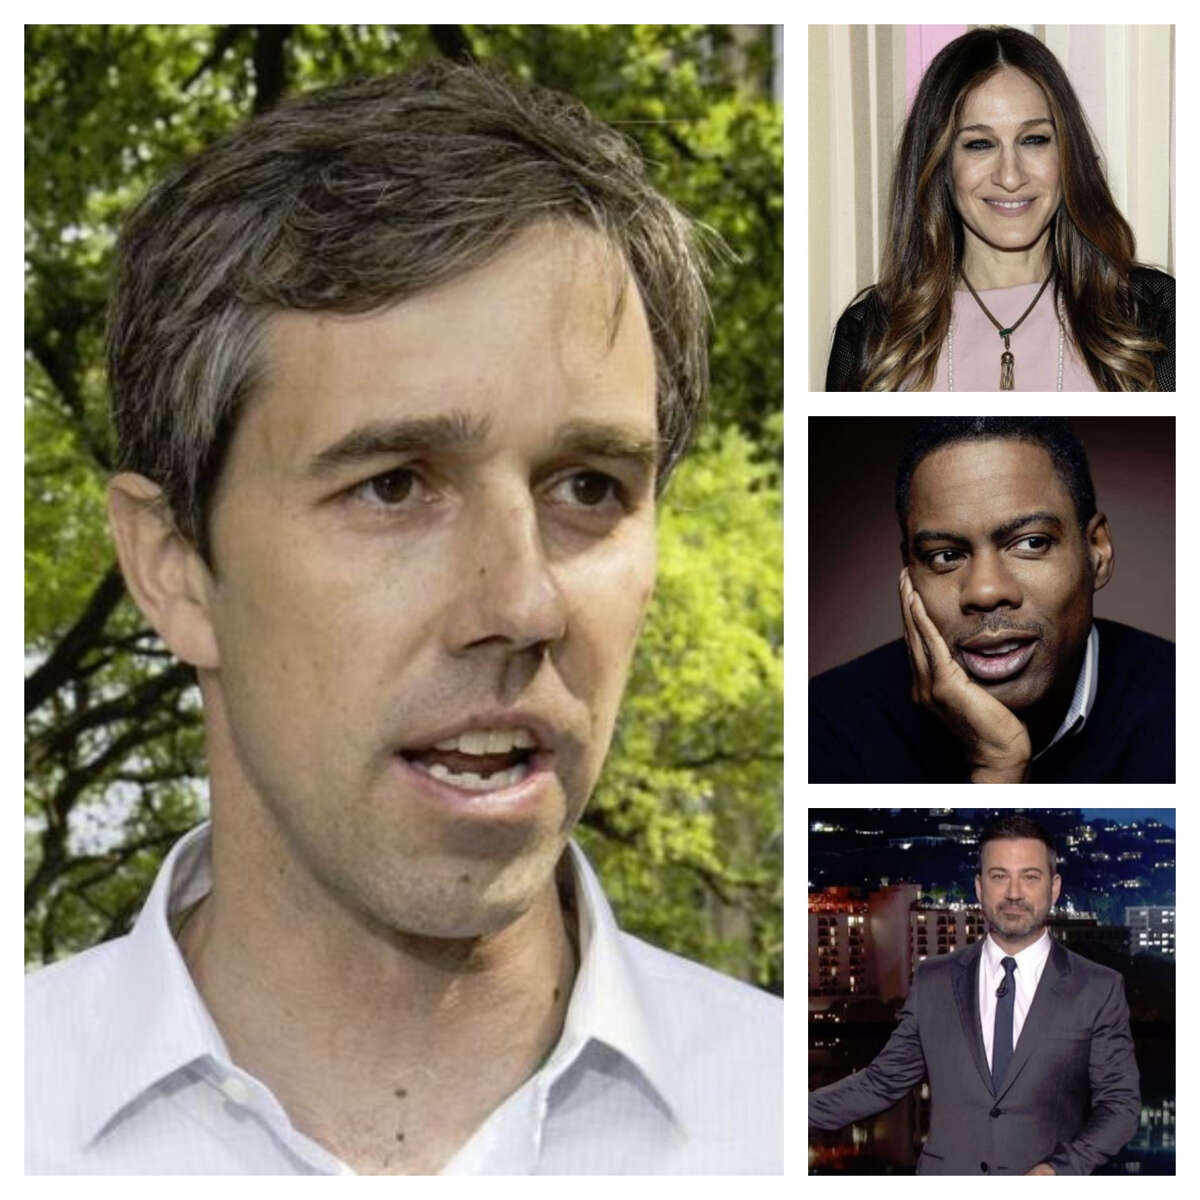 Hollywood celebrities can't get enough of Beto O'Rourke. Sarah Jessica Parker, Jimmy Kimmel,and Chris Rock have all donated to O'Rourke's campaign. Photos: Celebrities who have backed O'Rourke...